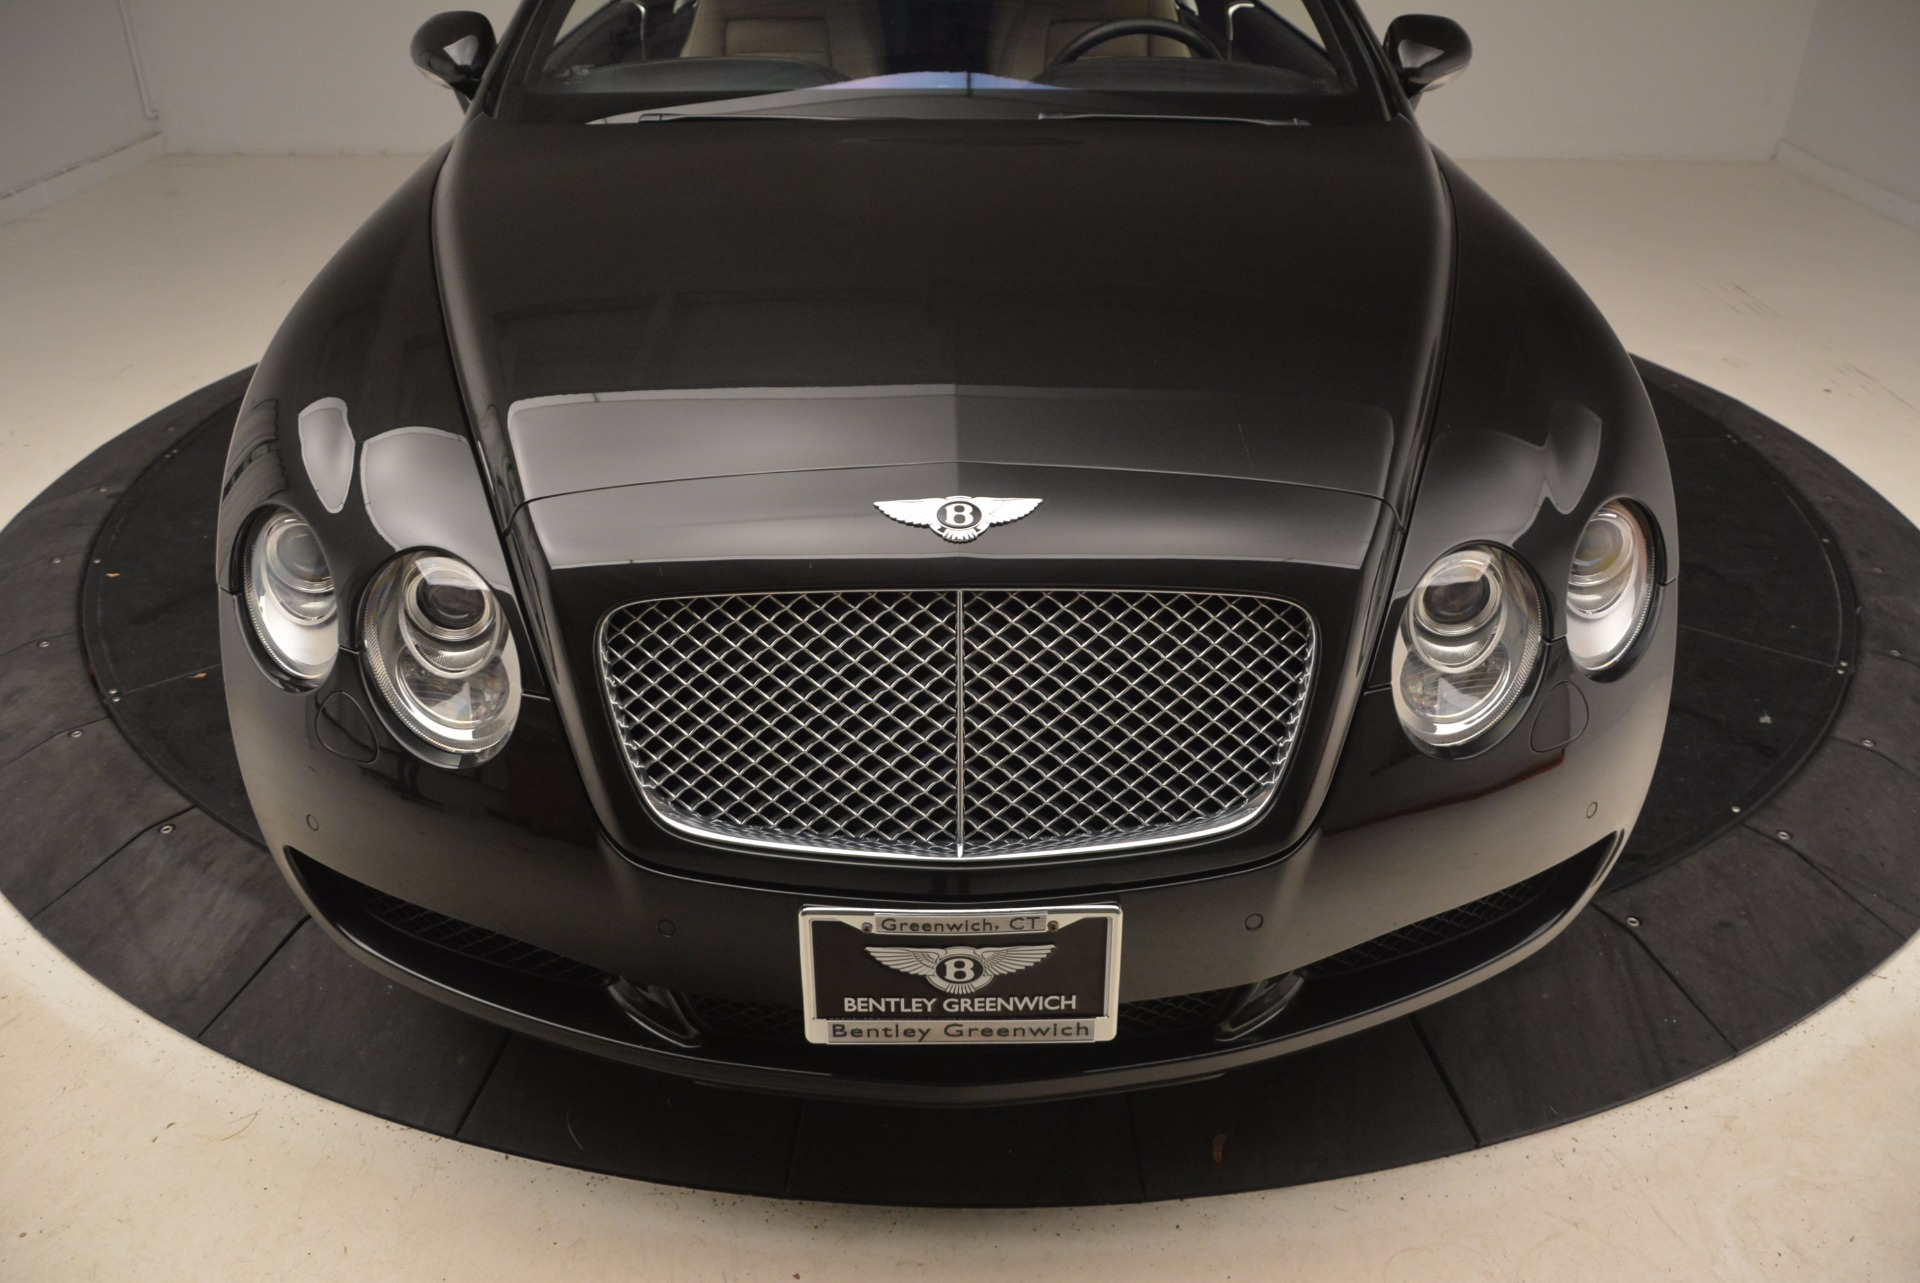 Used 2005 Bentley Continental GT W12 For Sale In Westport, CT 1677_p13